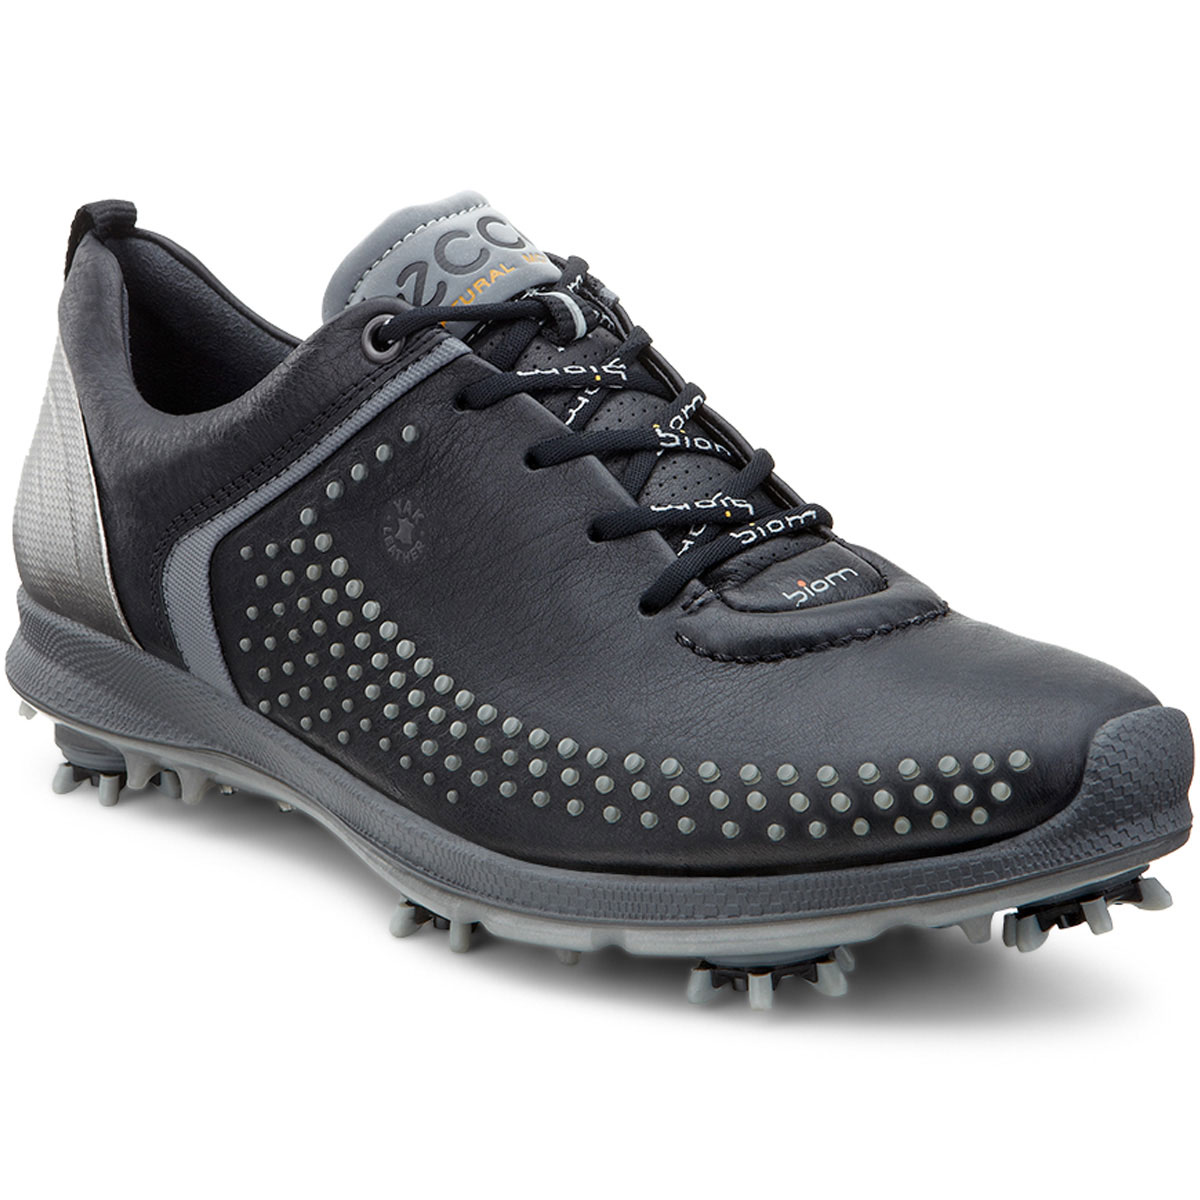 Ecco Womens Golf Shoes Ebay